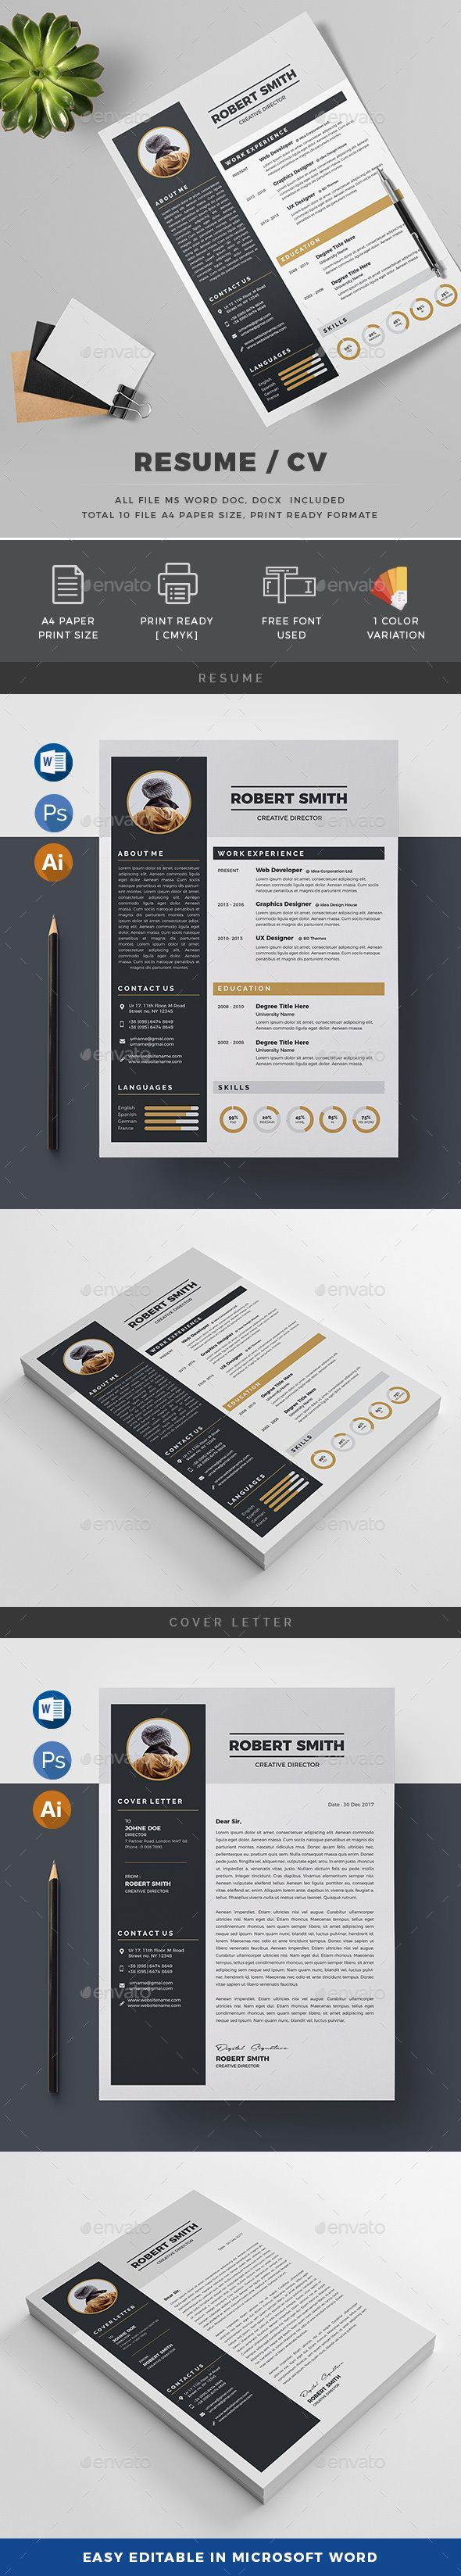 Resume Features of Resume Template Color Versions A4 Paper Size With ...